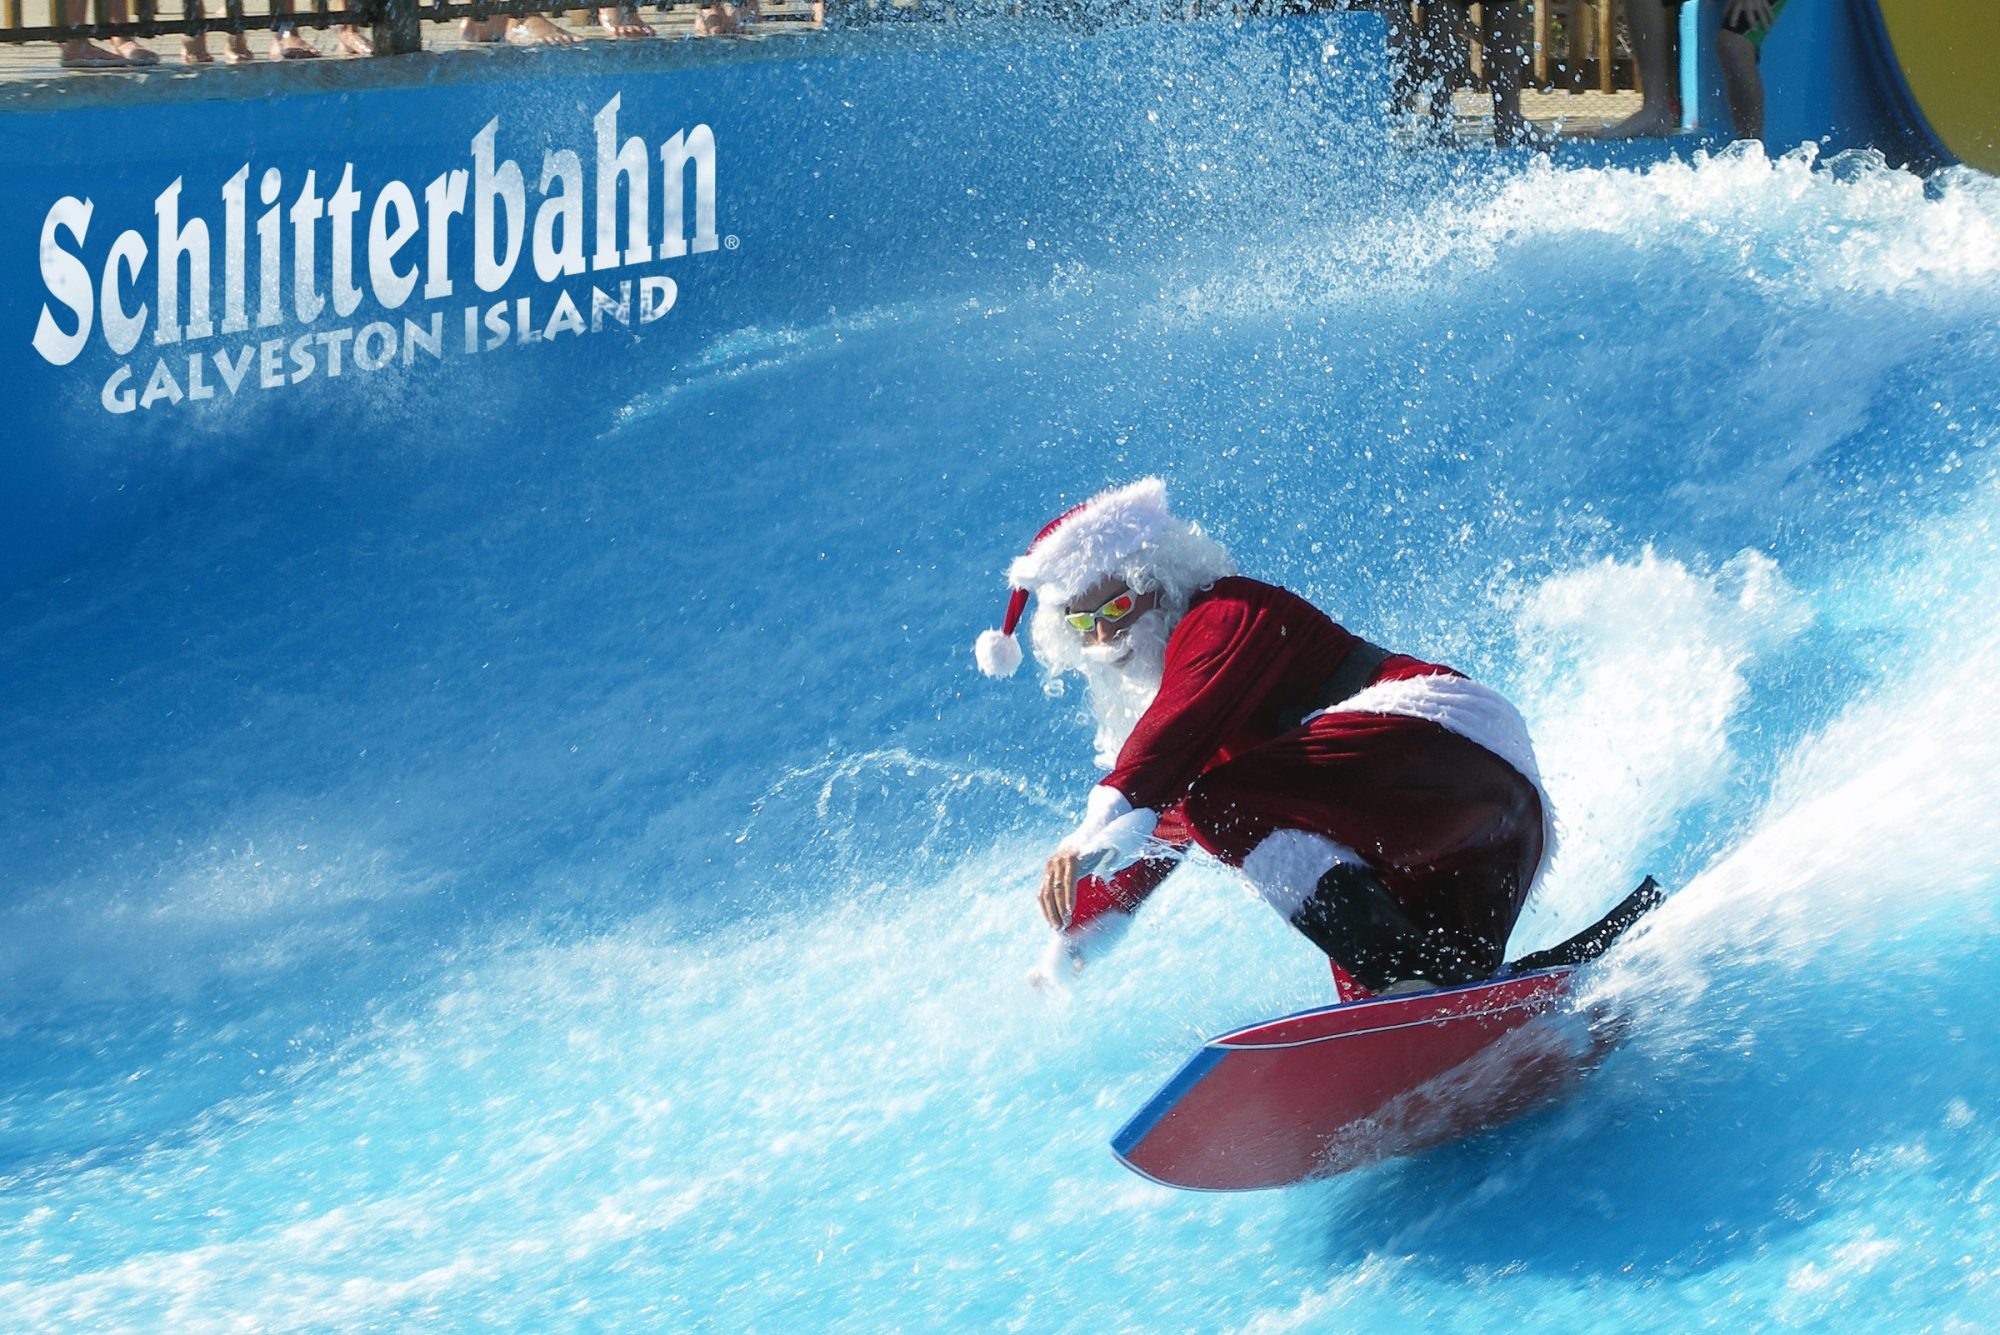 5 Unbelievable Christmas Events You Have to Experience in Galveston